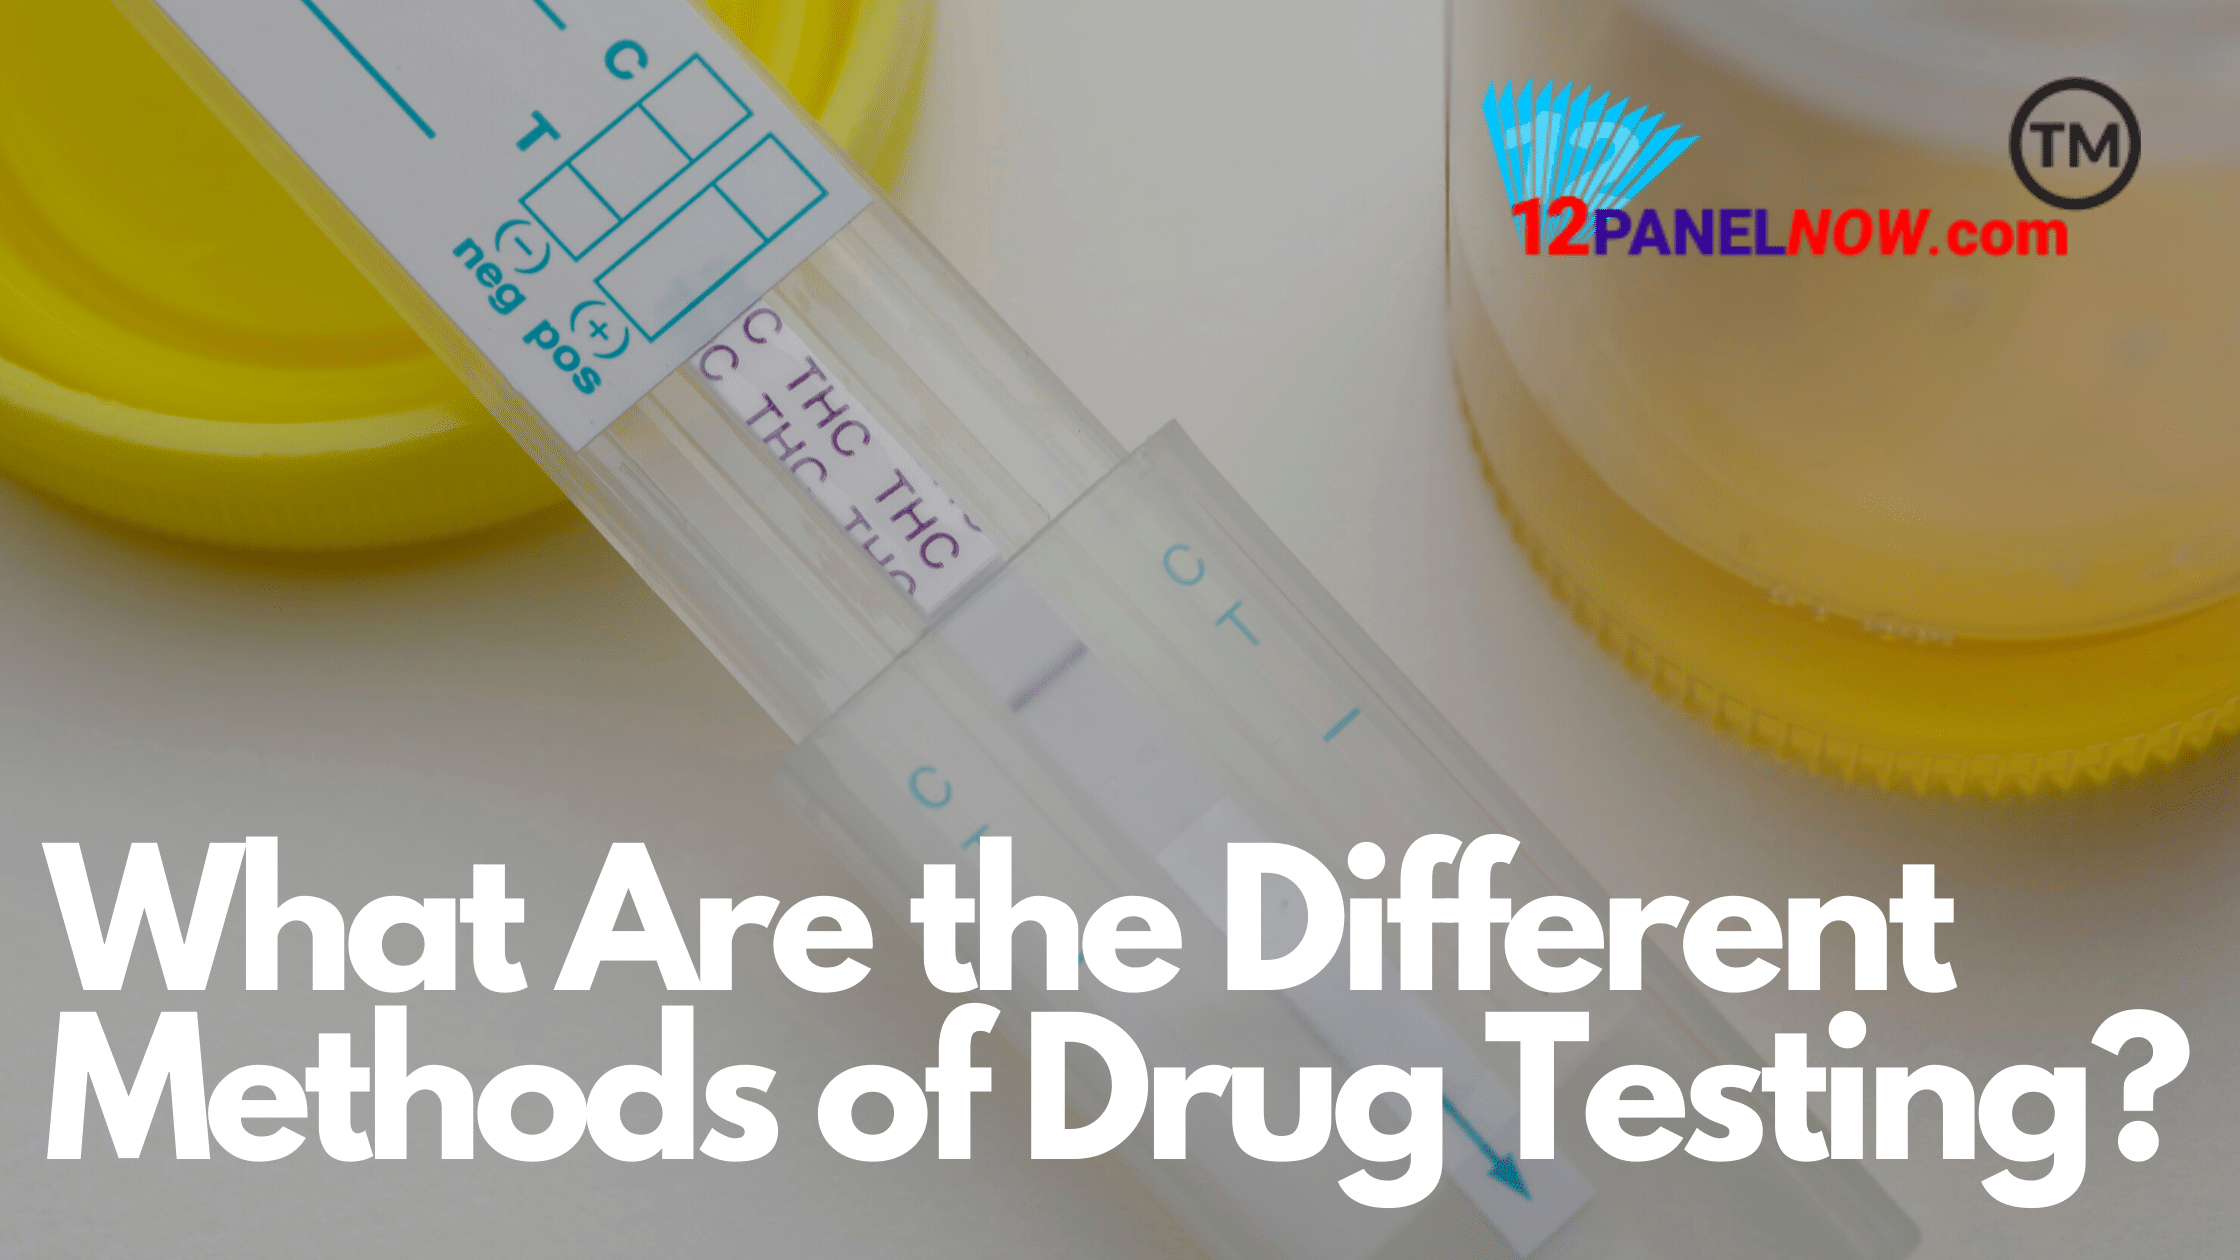 What Are the Different Methods of Drug Testing?